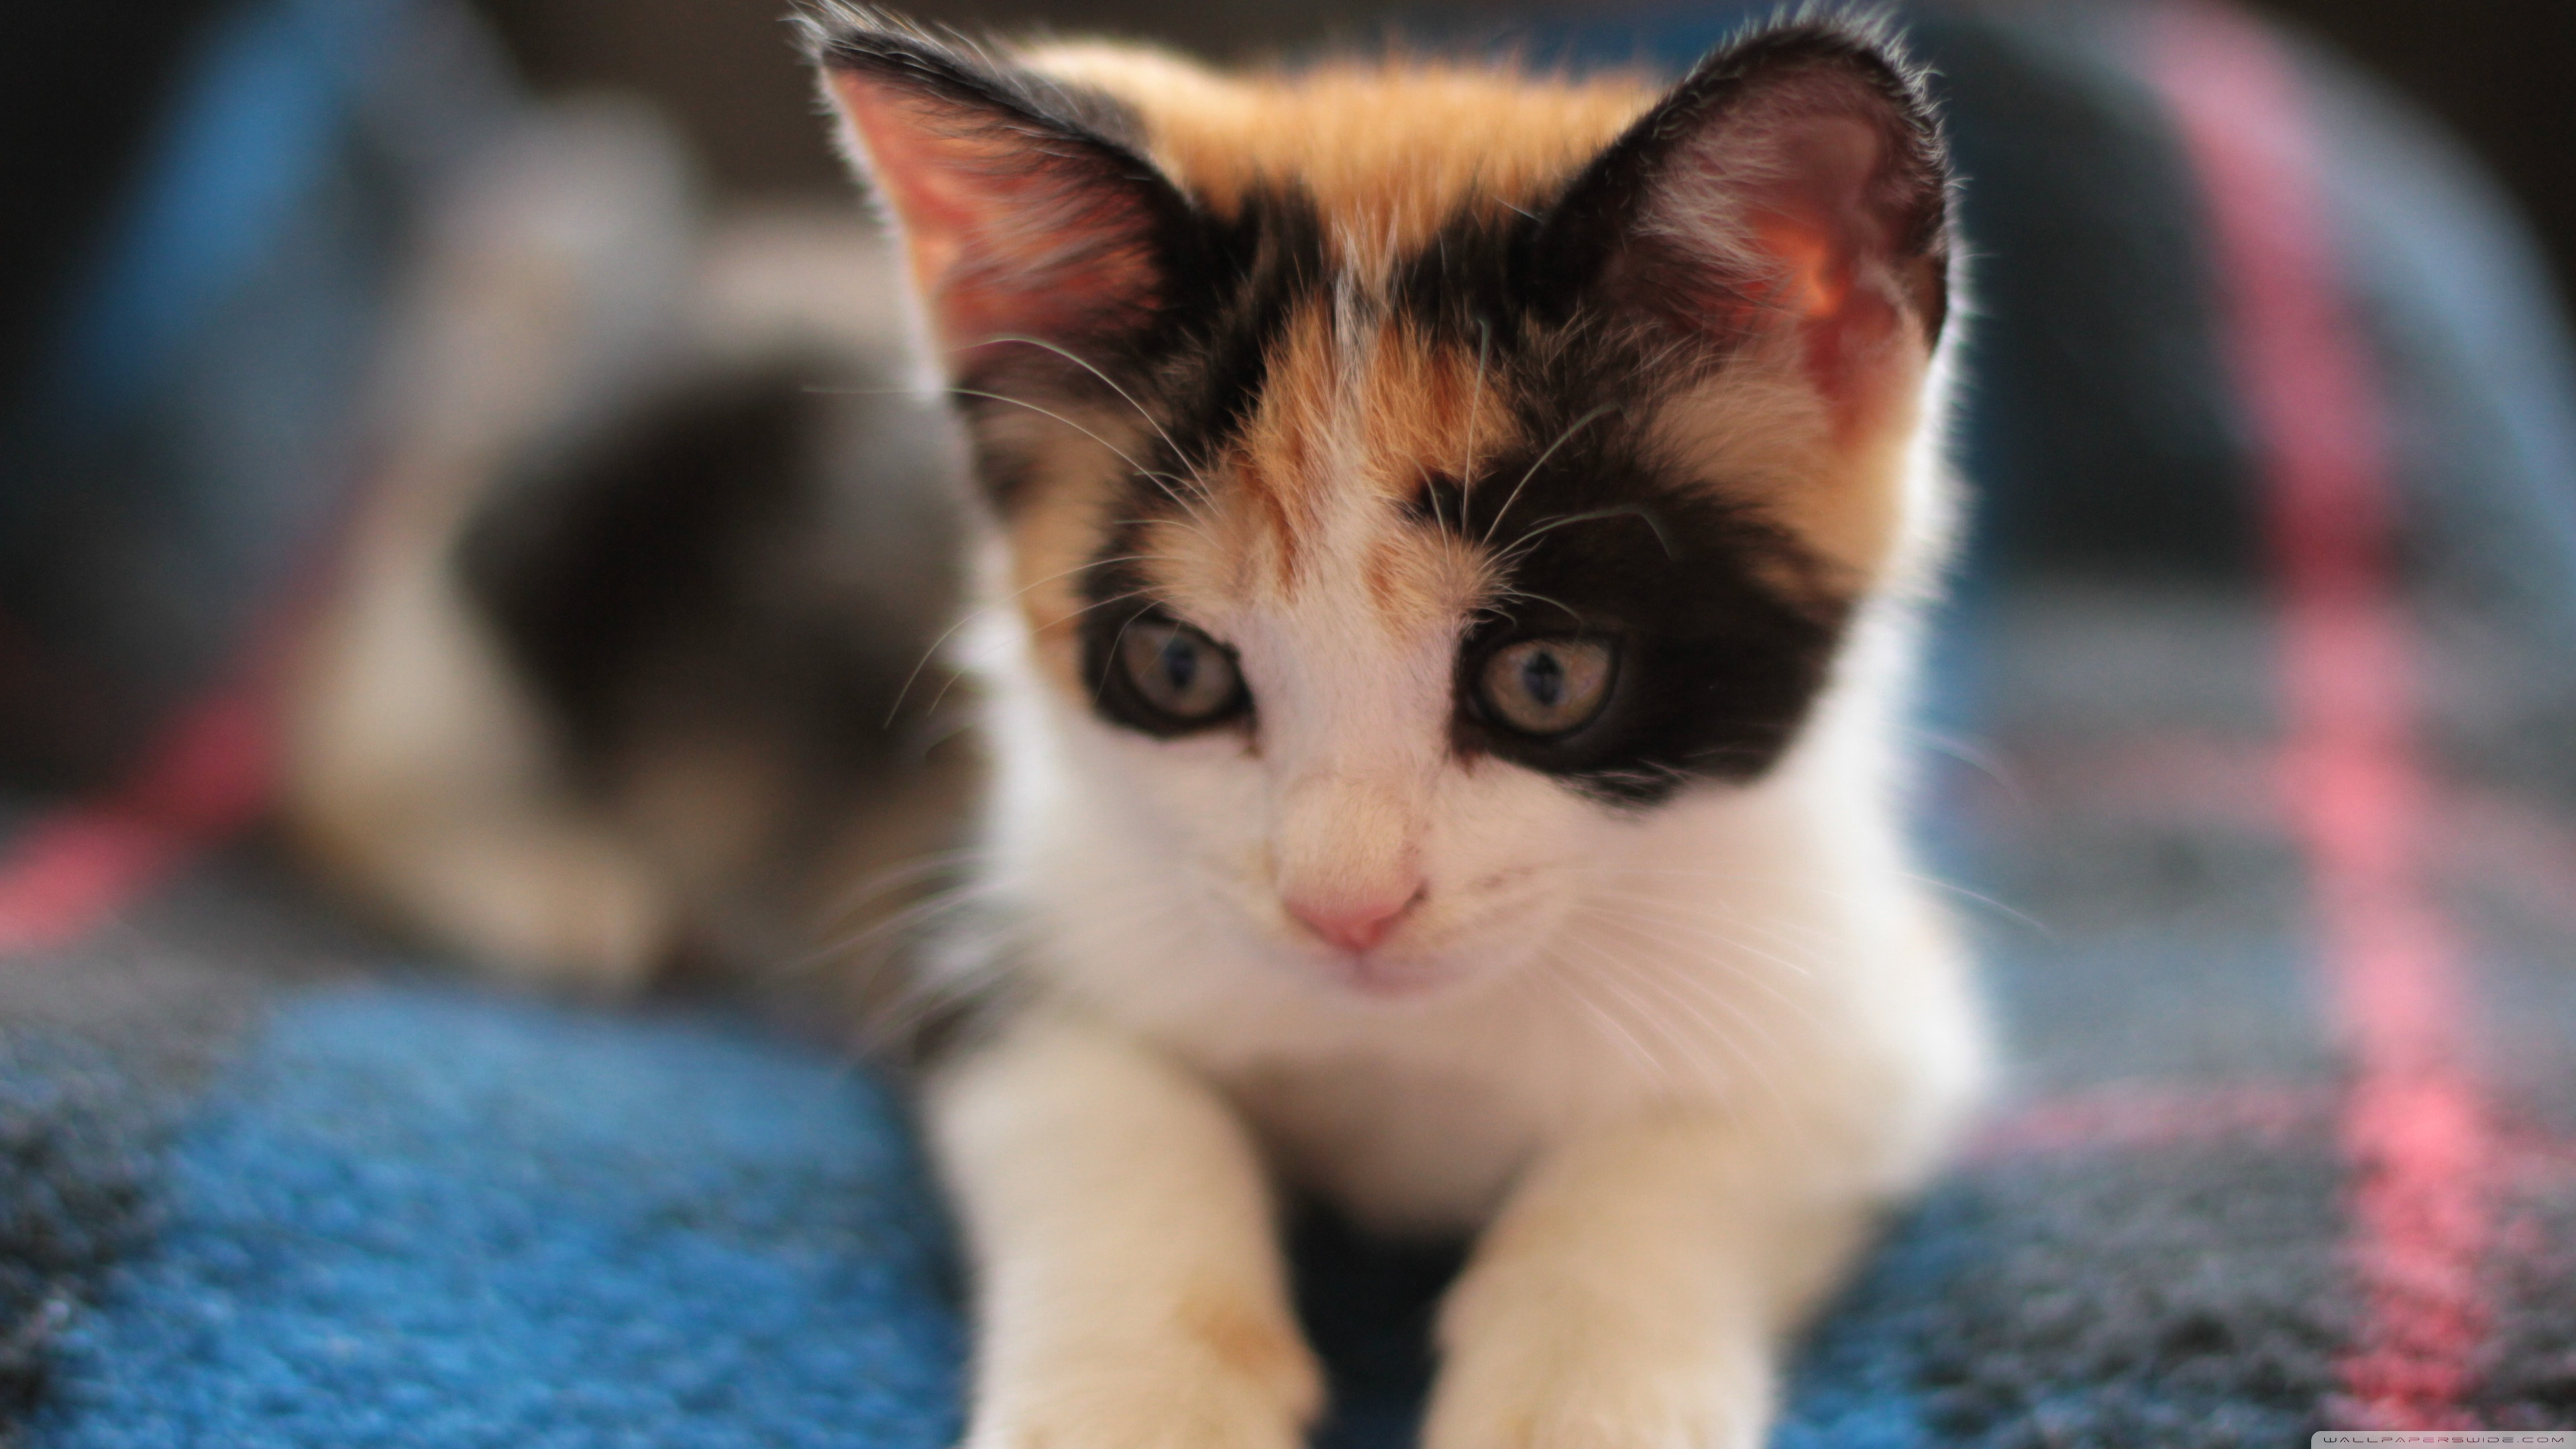 kitten 4k photo wallpaper 3840x2160